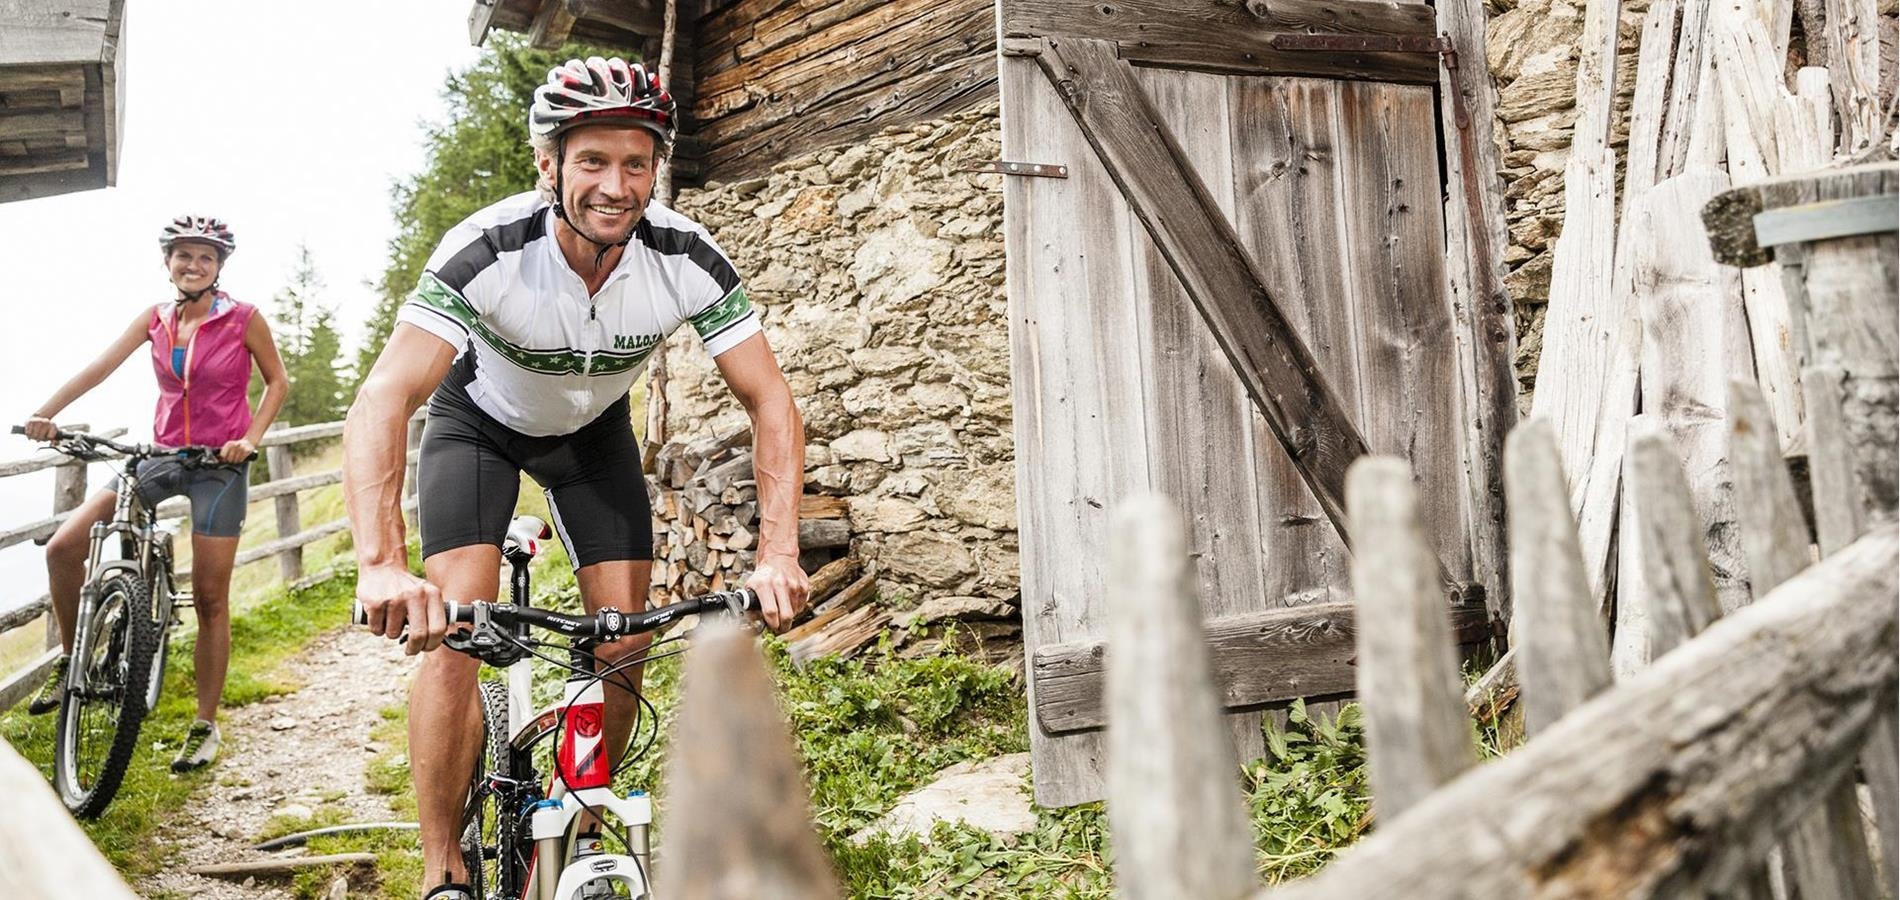 Mountainbike in Scena